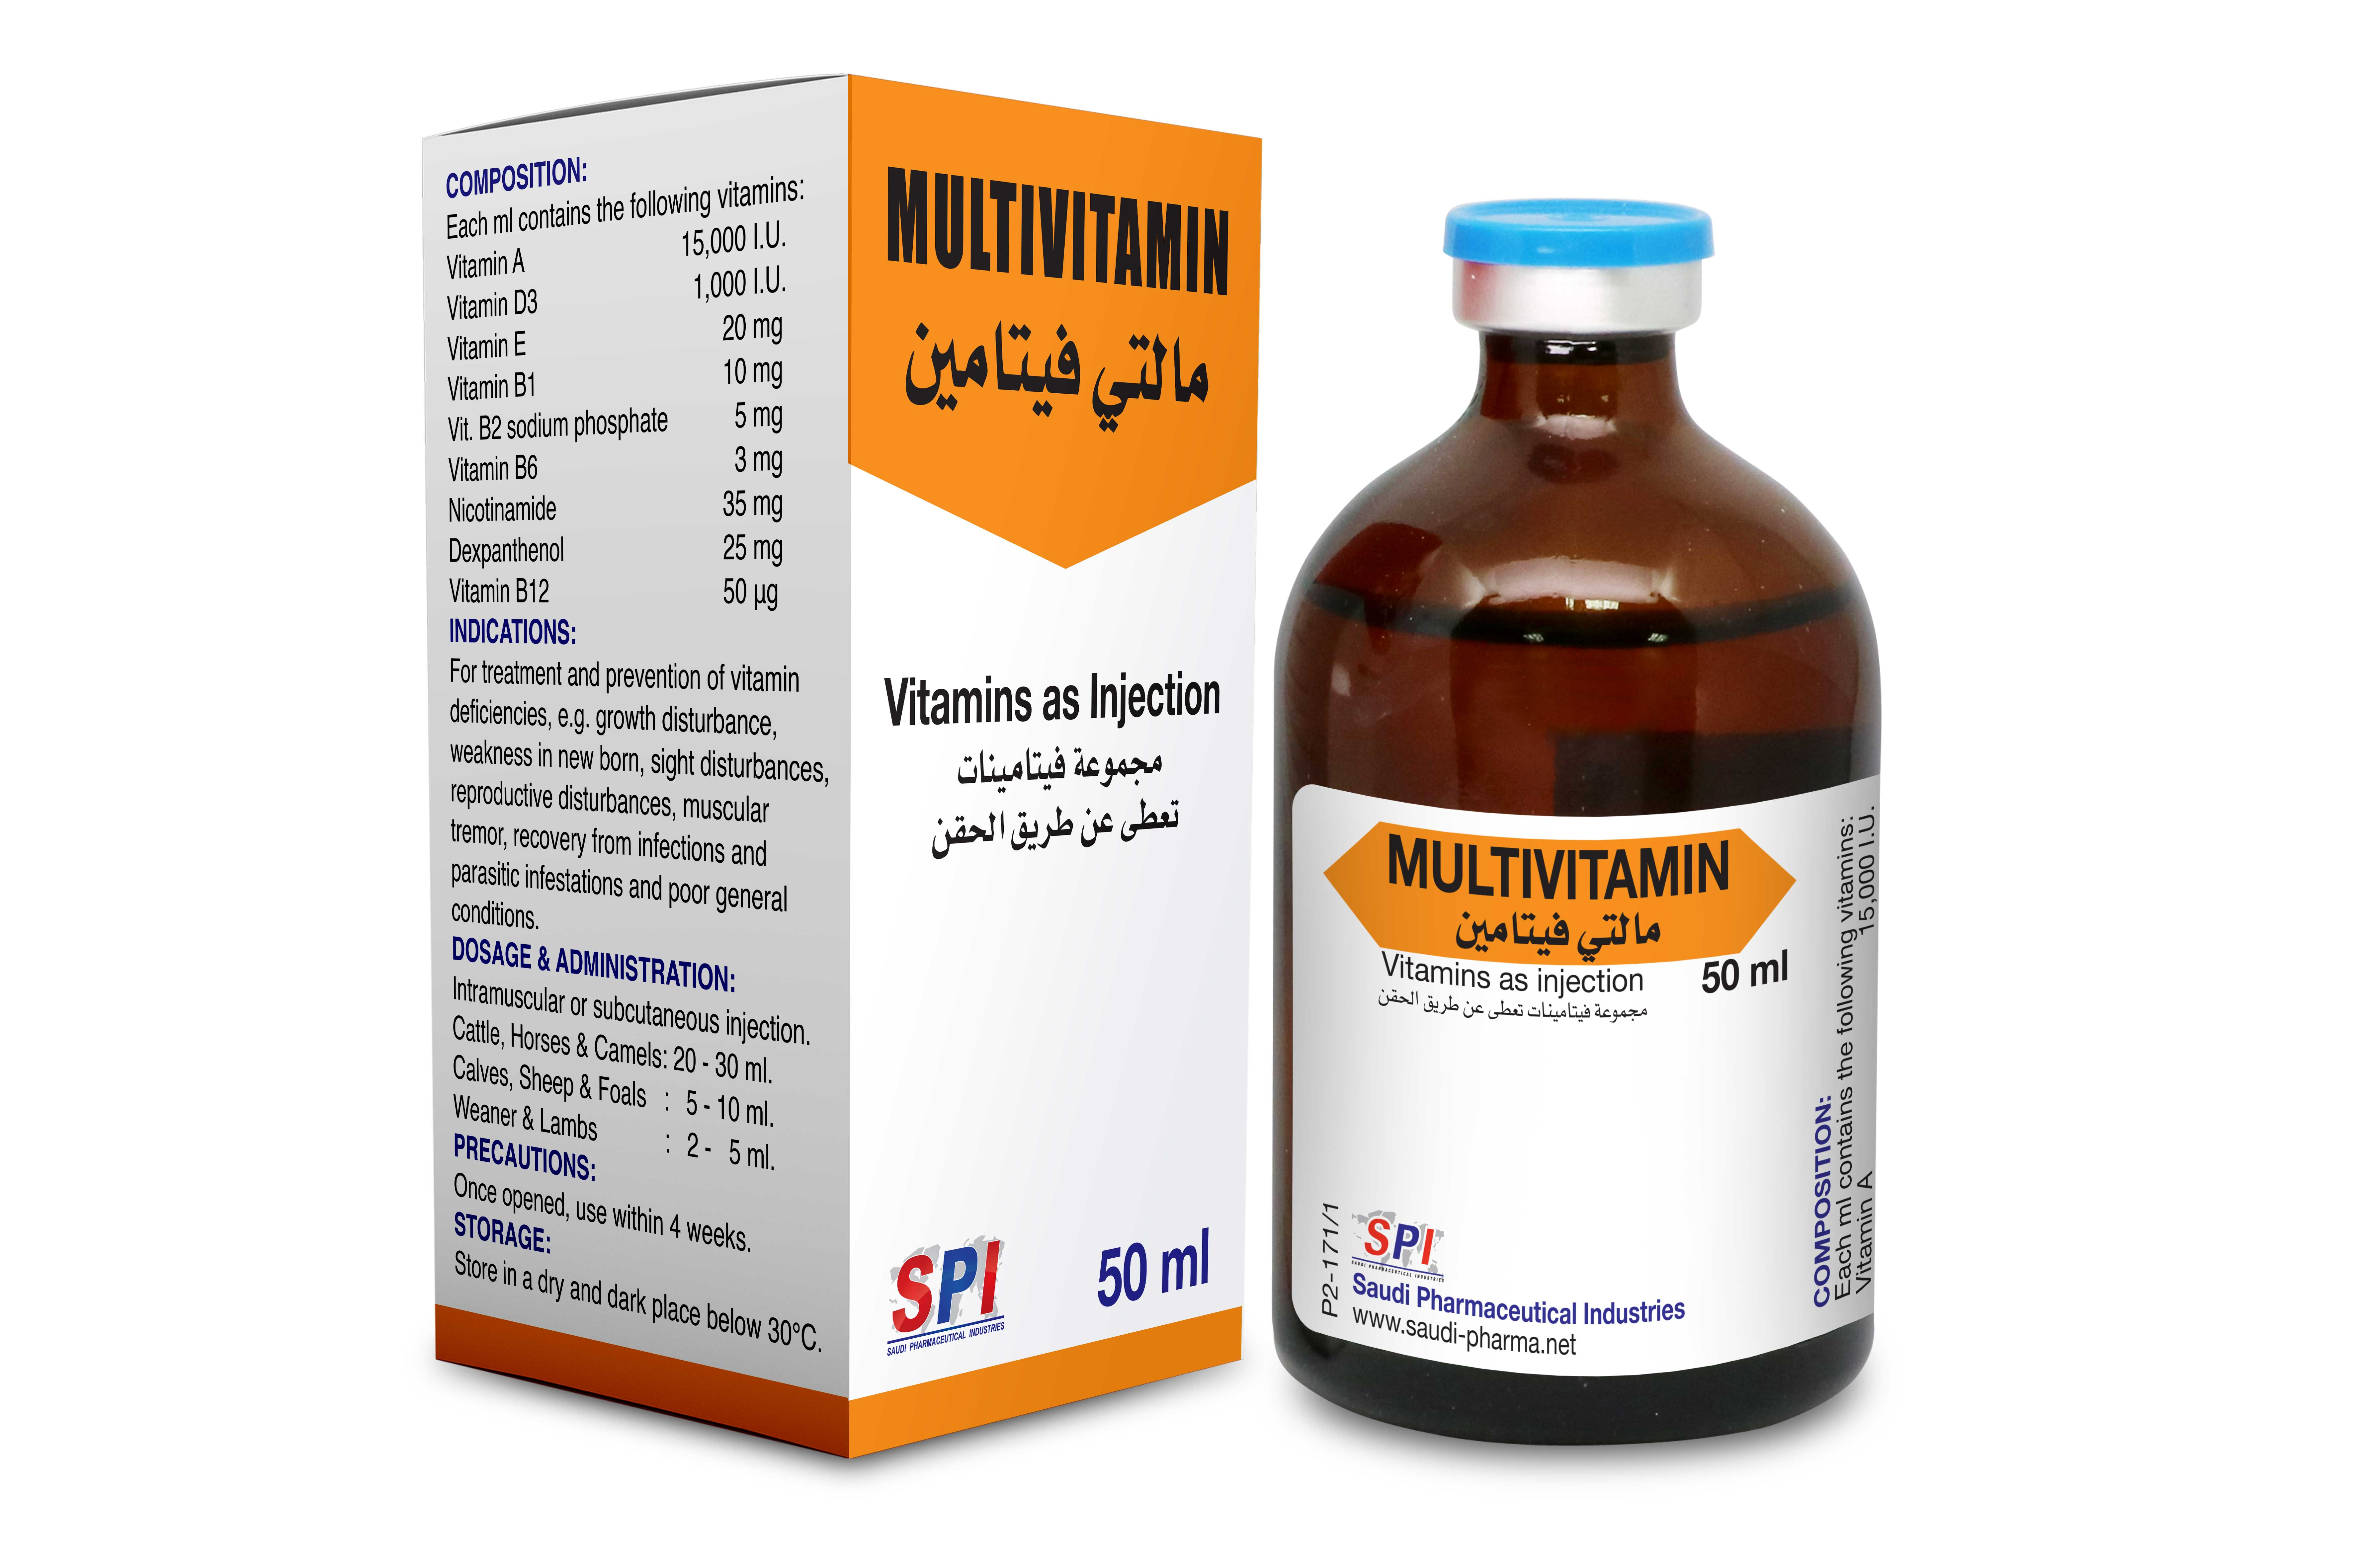 MULTIVITAMIN 50 ml